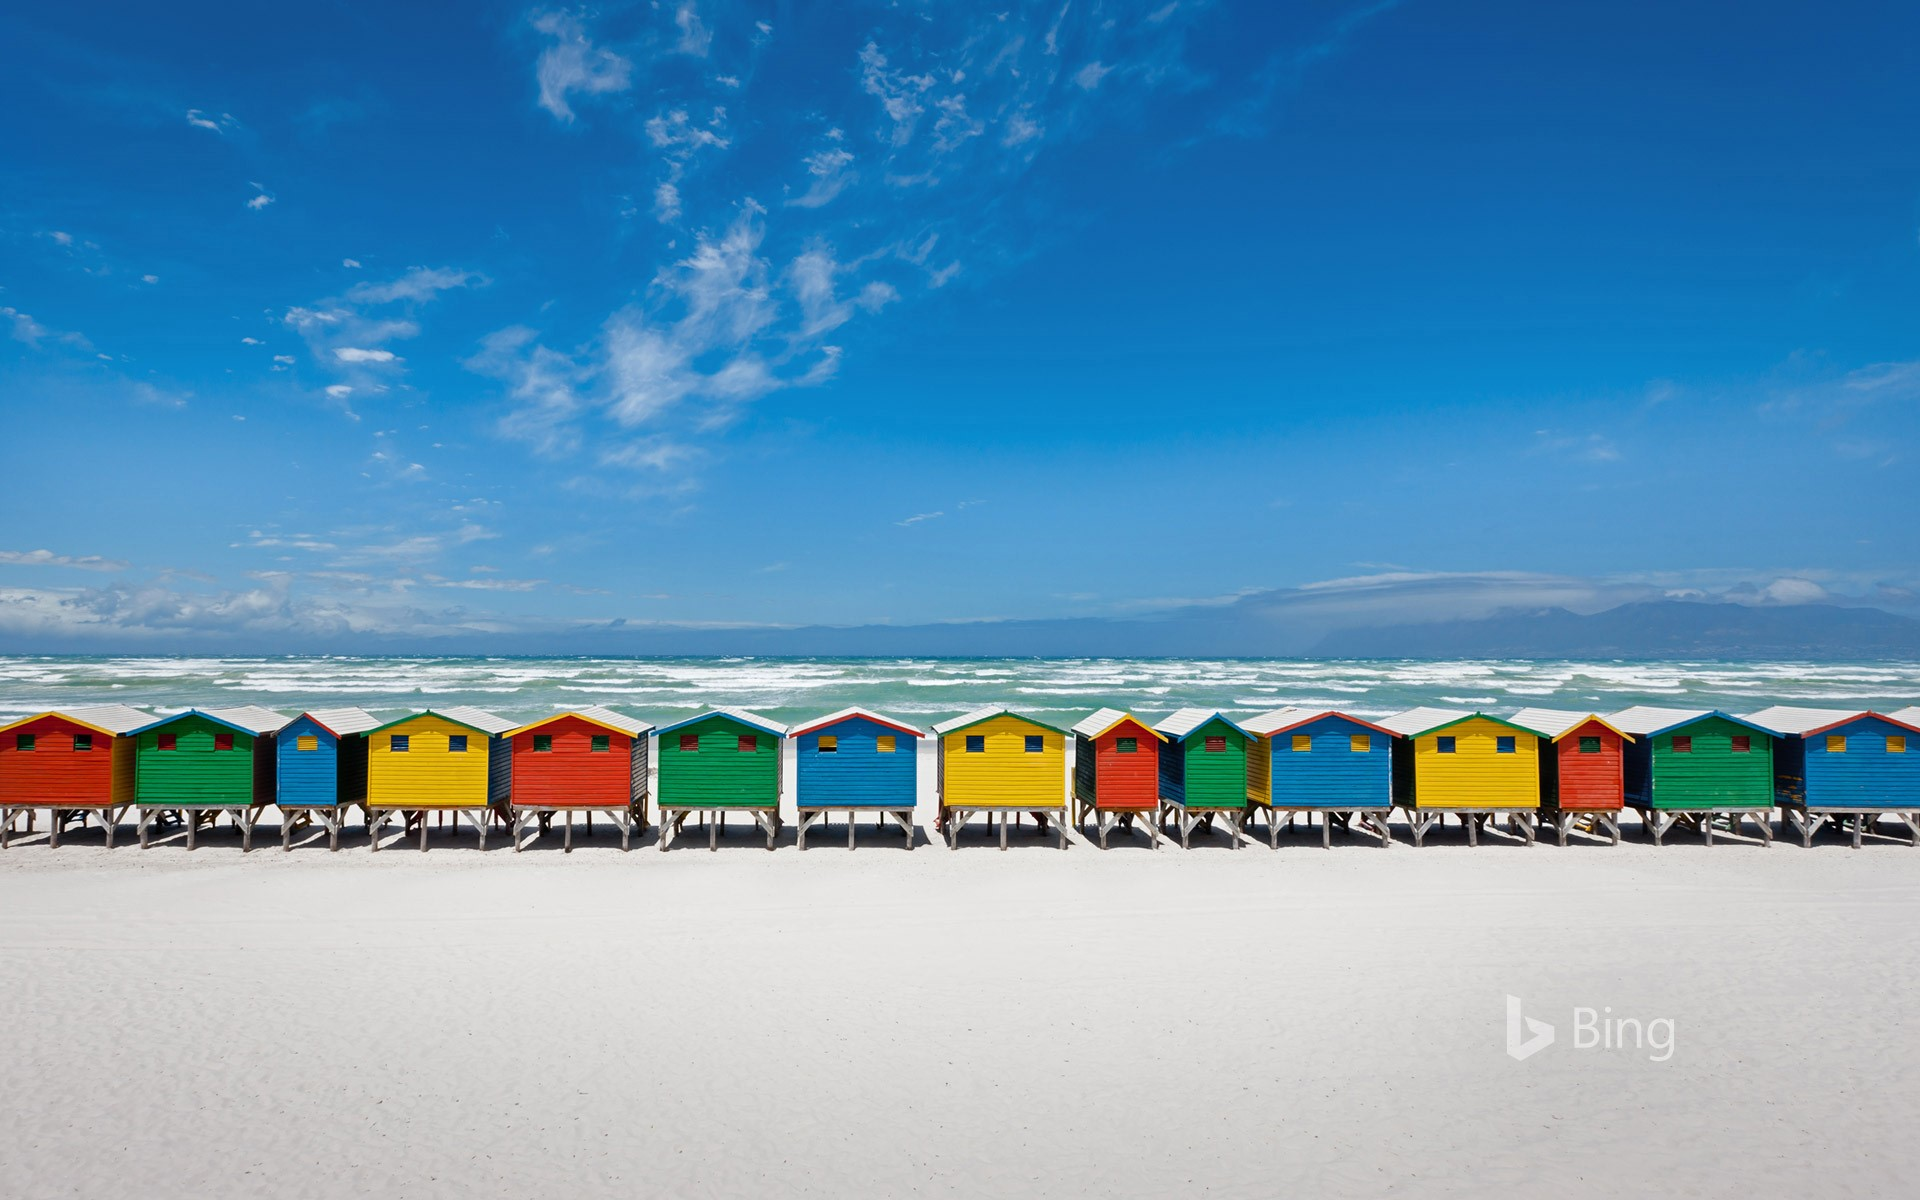 Beach huts in Muizenberg, South Africa